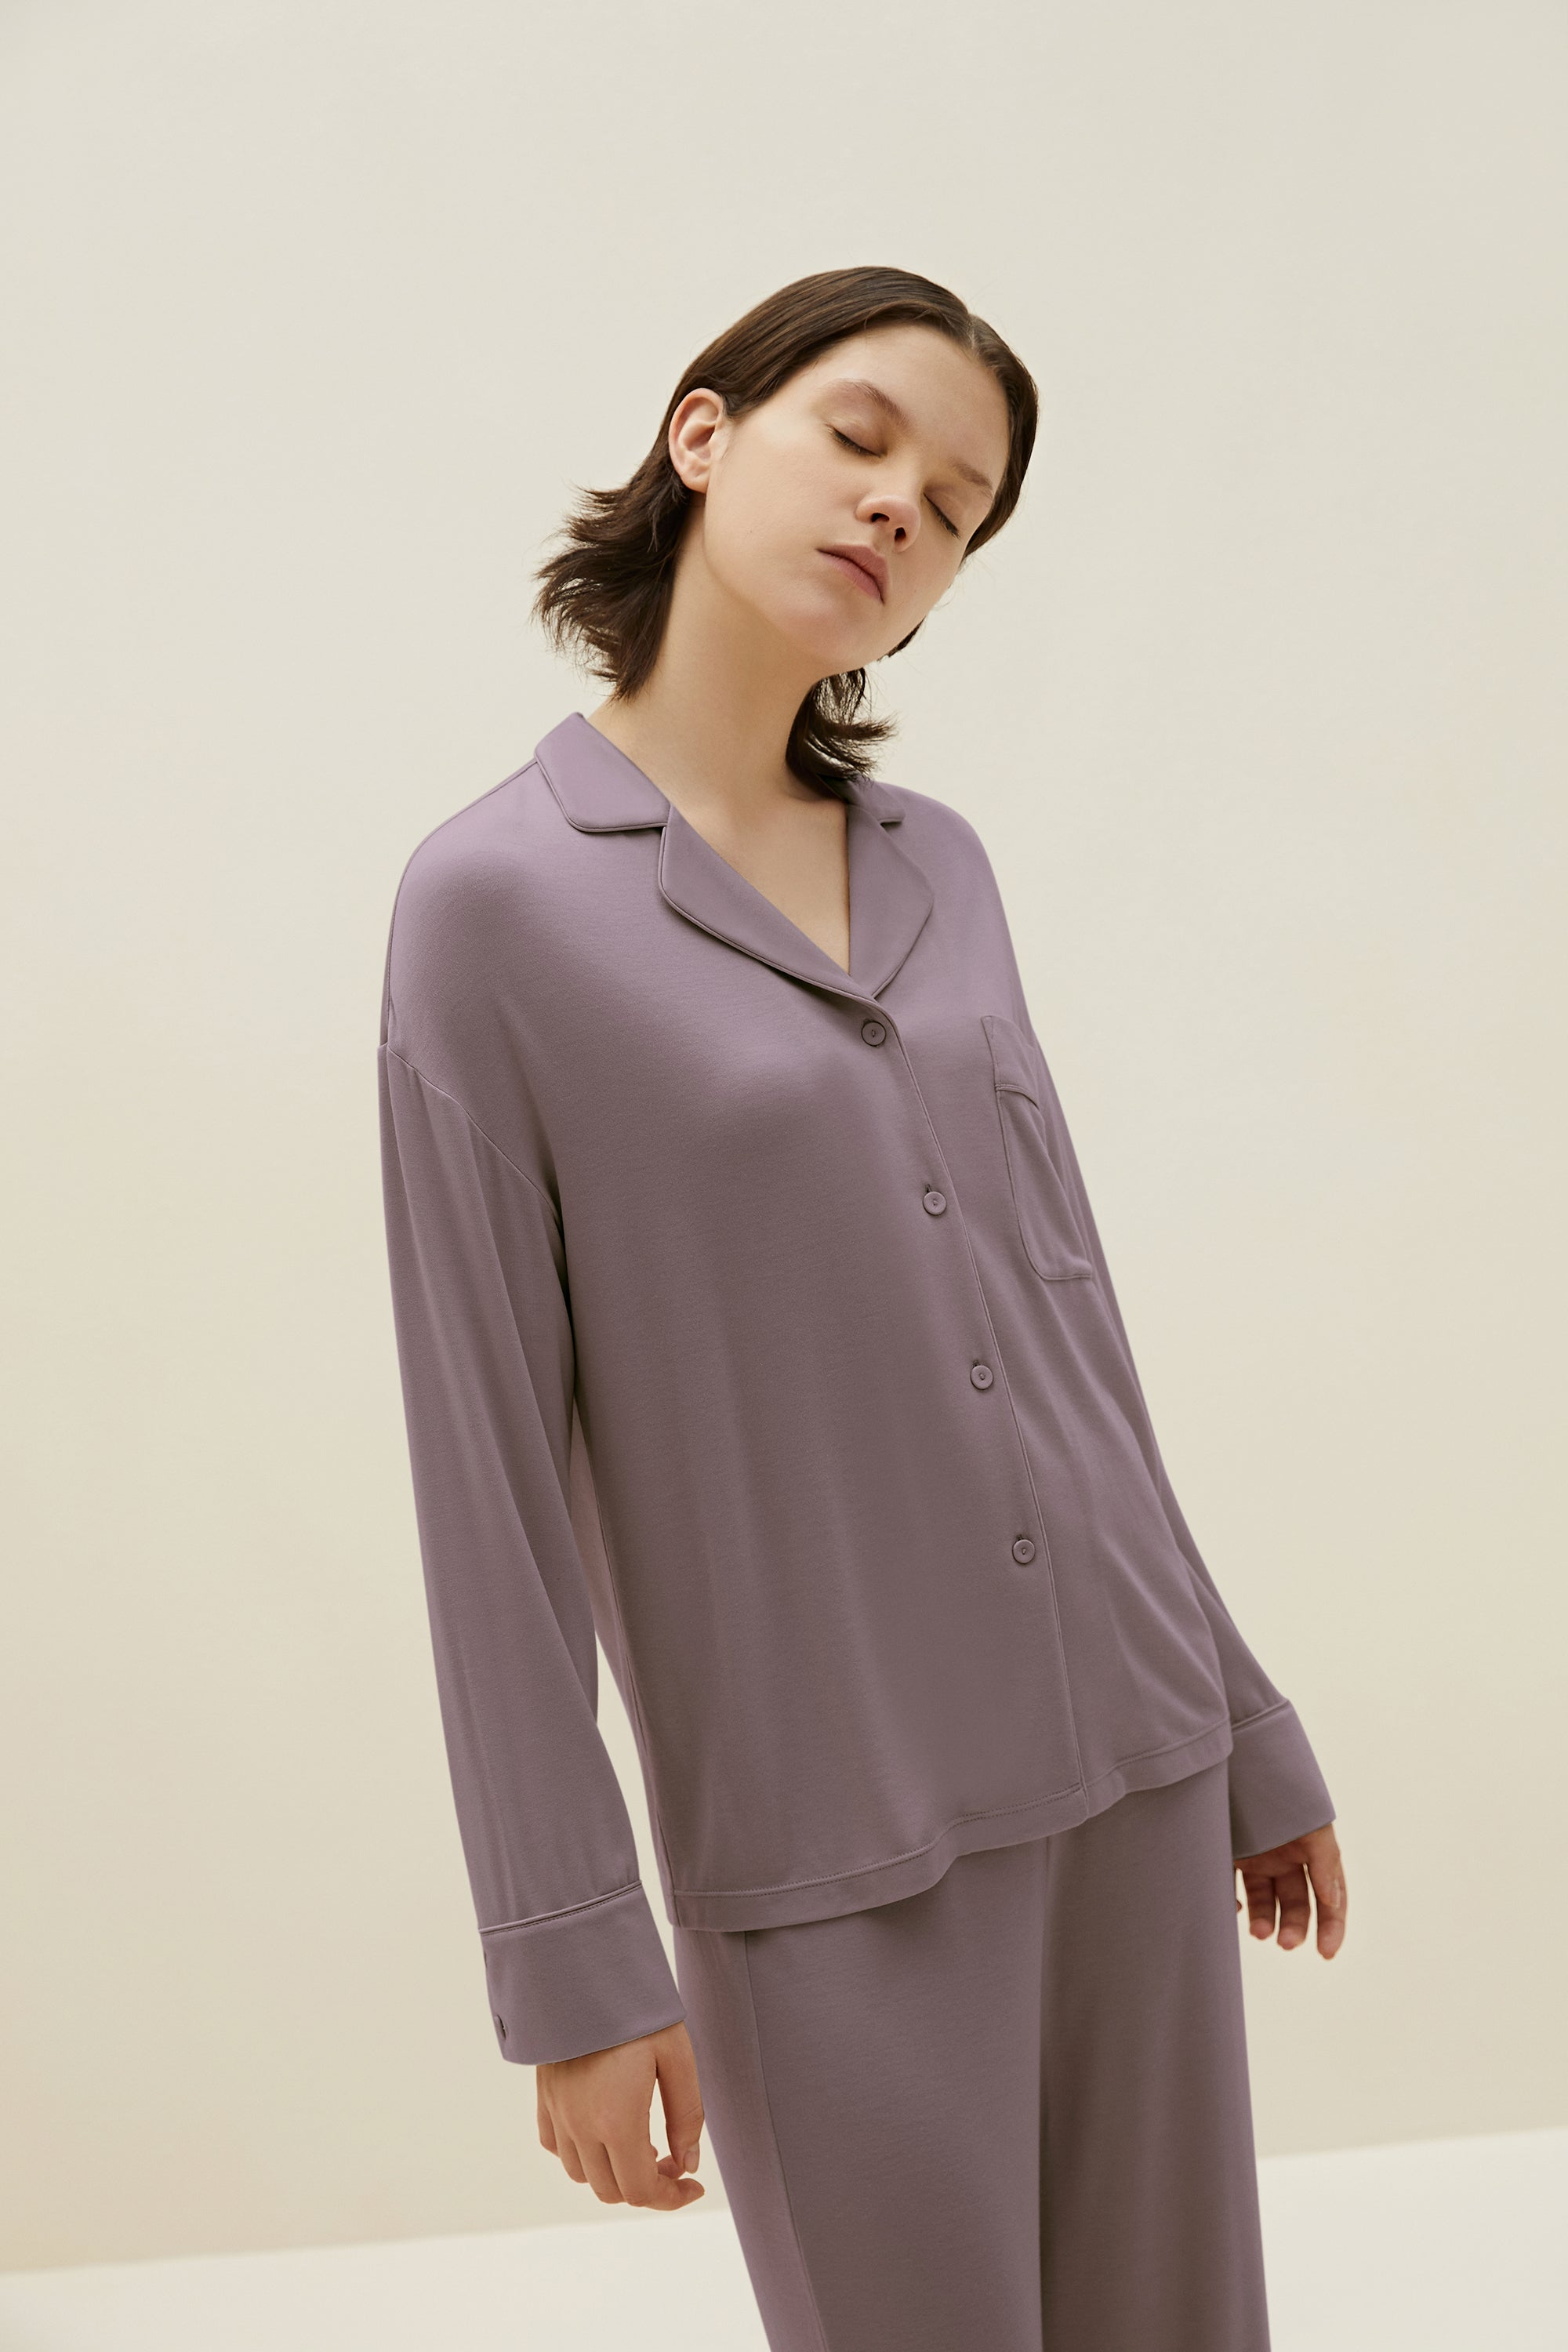 Model wearing NEIWAI's Classic Cozy Button-Up Pajama Top in Purple Dove.